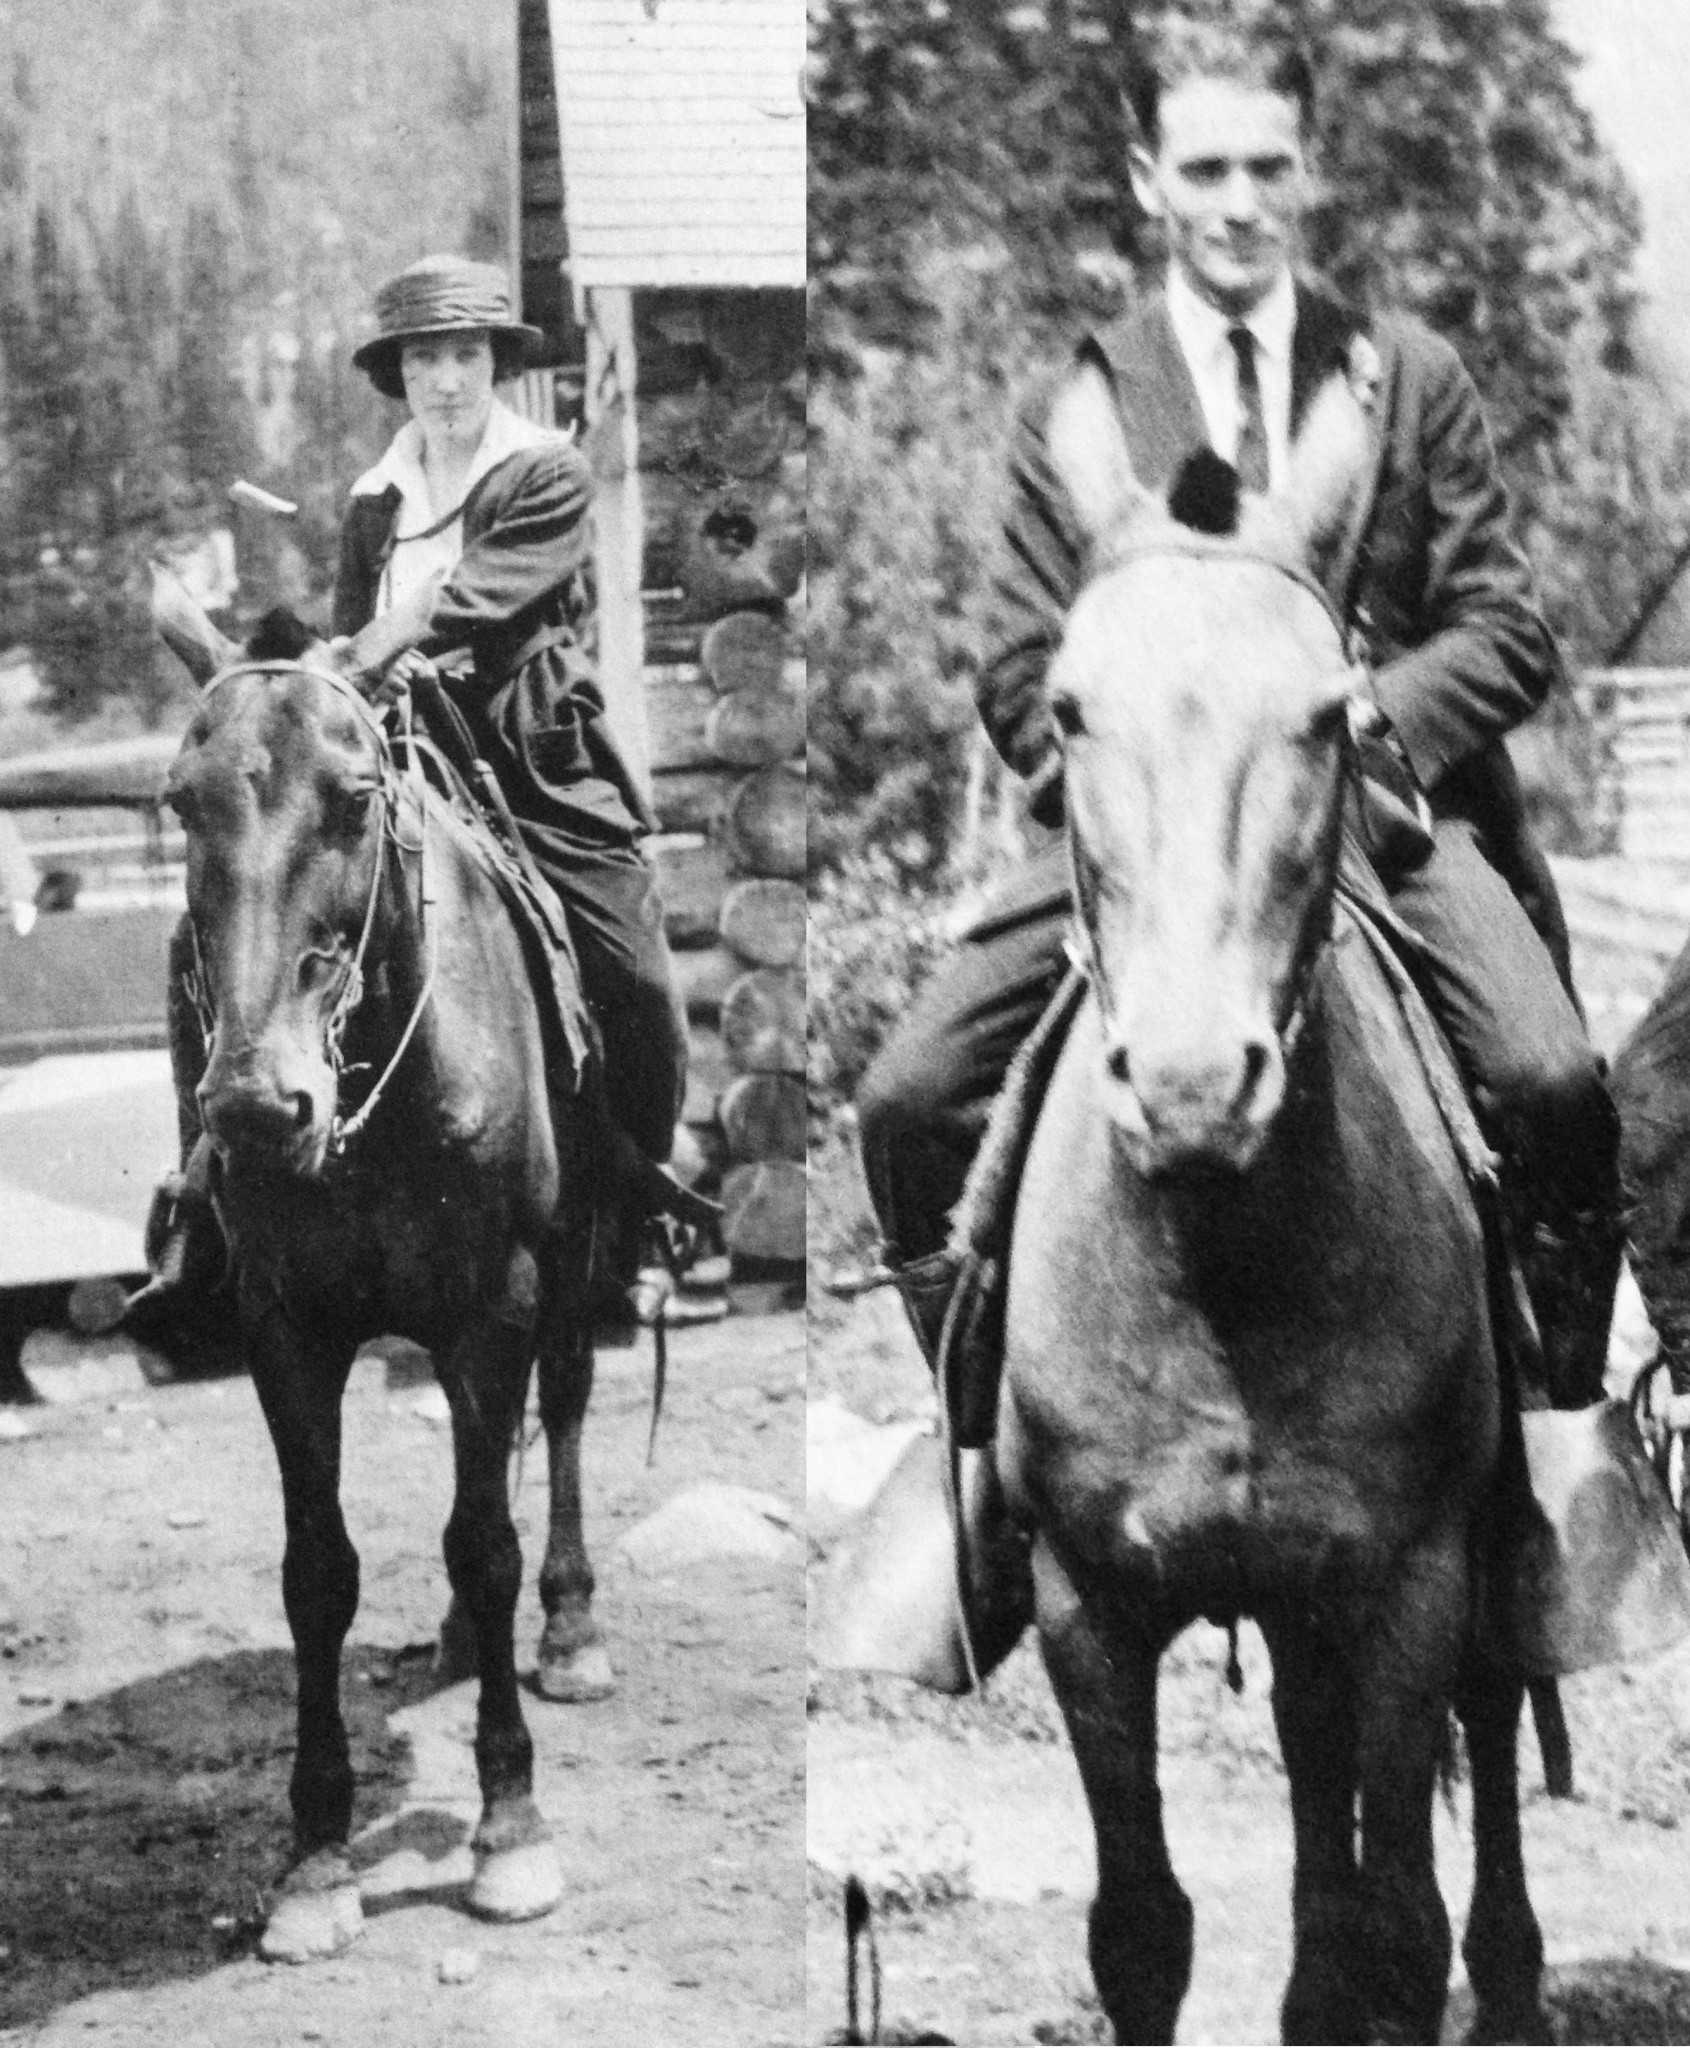 My paternal grandparents riding at their cabin in the mountains in Utah 1920. (Photos from family archives)